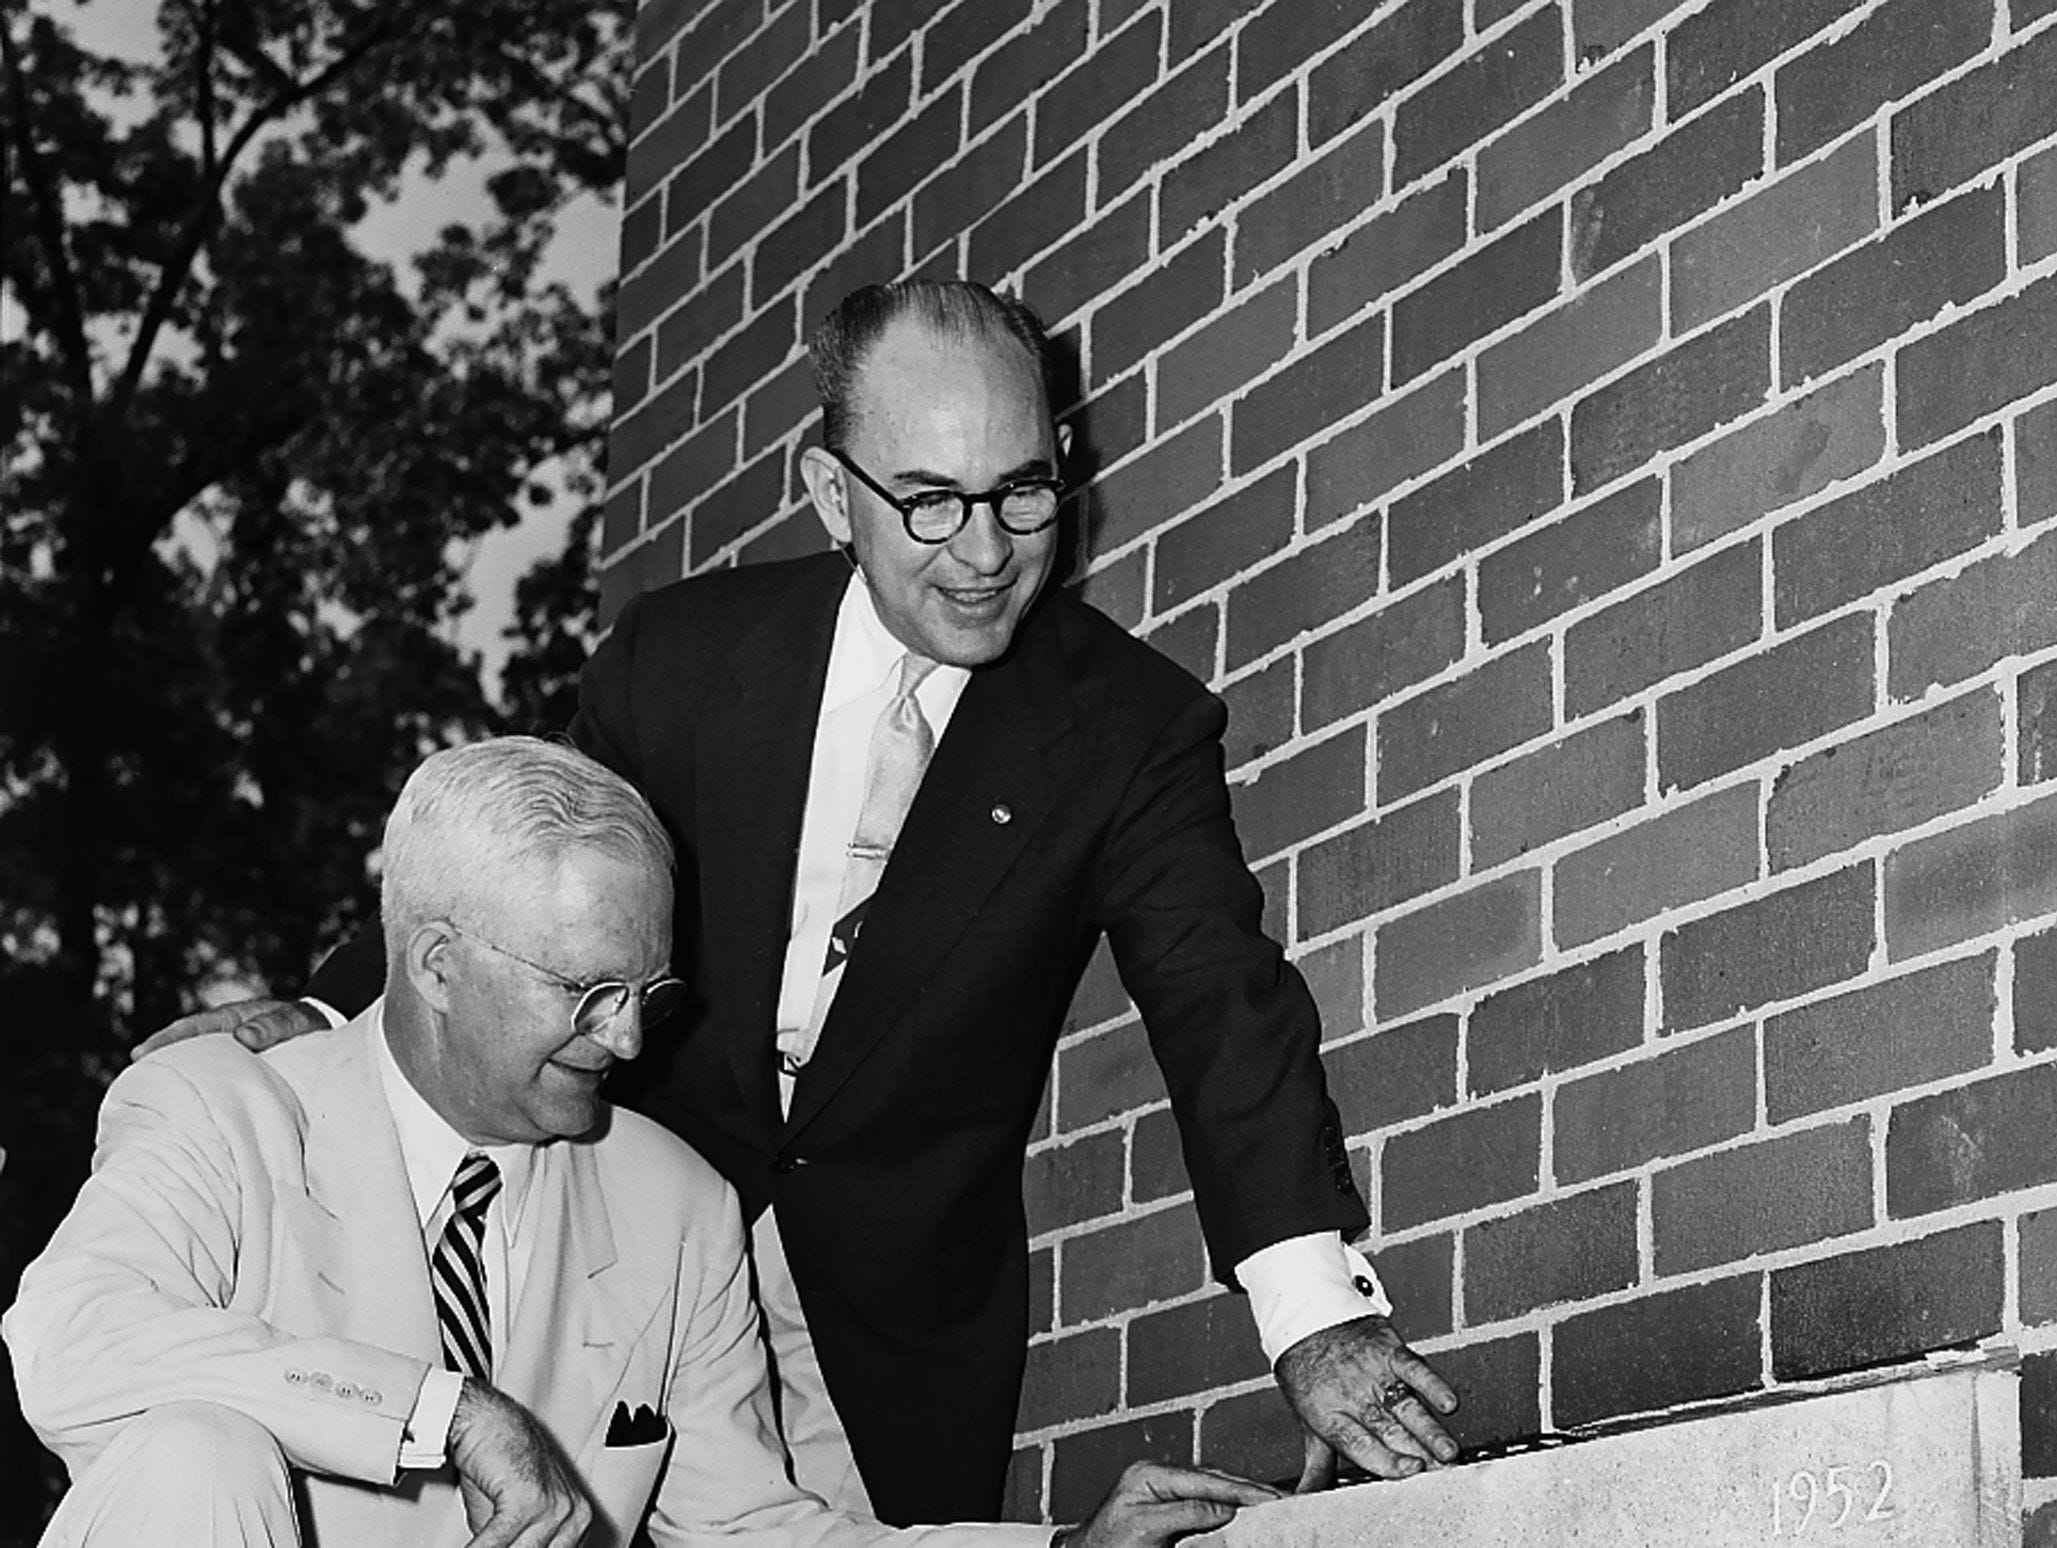 Members of Linden Avenue Christian Church set in place the material cornerstone of a $700,000 educational building and temporary sanctuary on 14 June 1953. Leaders included Dr. H.T. Wood, left, pastor, and J. Barrow Simmons, chairman of the executive committee new building council. The almost complete structure is at Union and East Parkway.